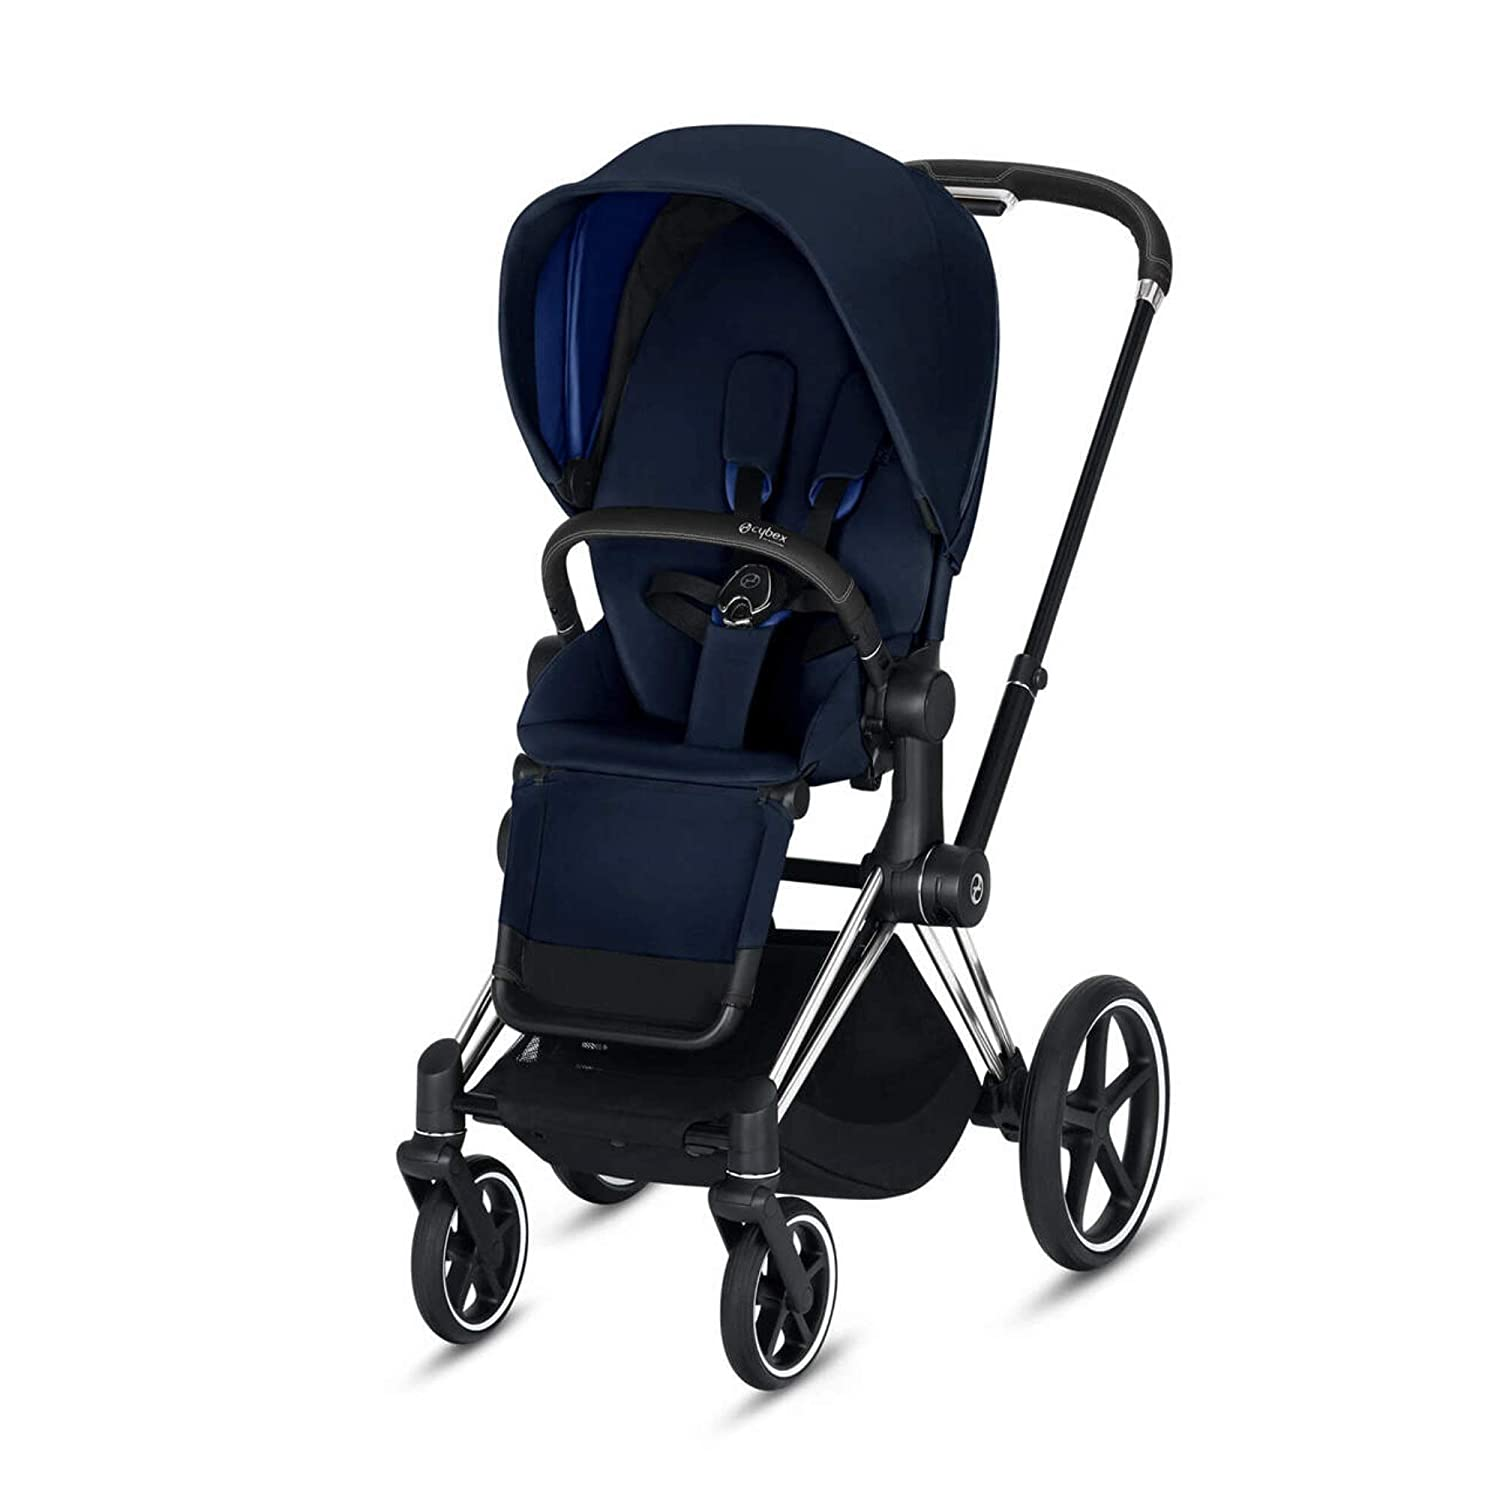 Cybex Priam 3 Complete Stroller, One-Hand Compact Fold, Reversible Seat, Smooth Ride All-Wheel Suspension, Extra Storage, Adjustable Leg Rest, Indigo Blue with Chrome/Black Frame